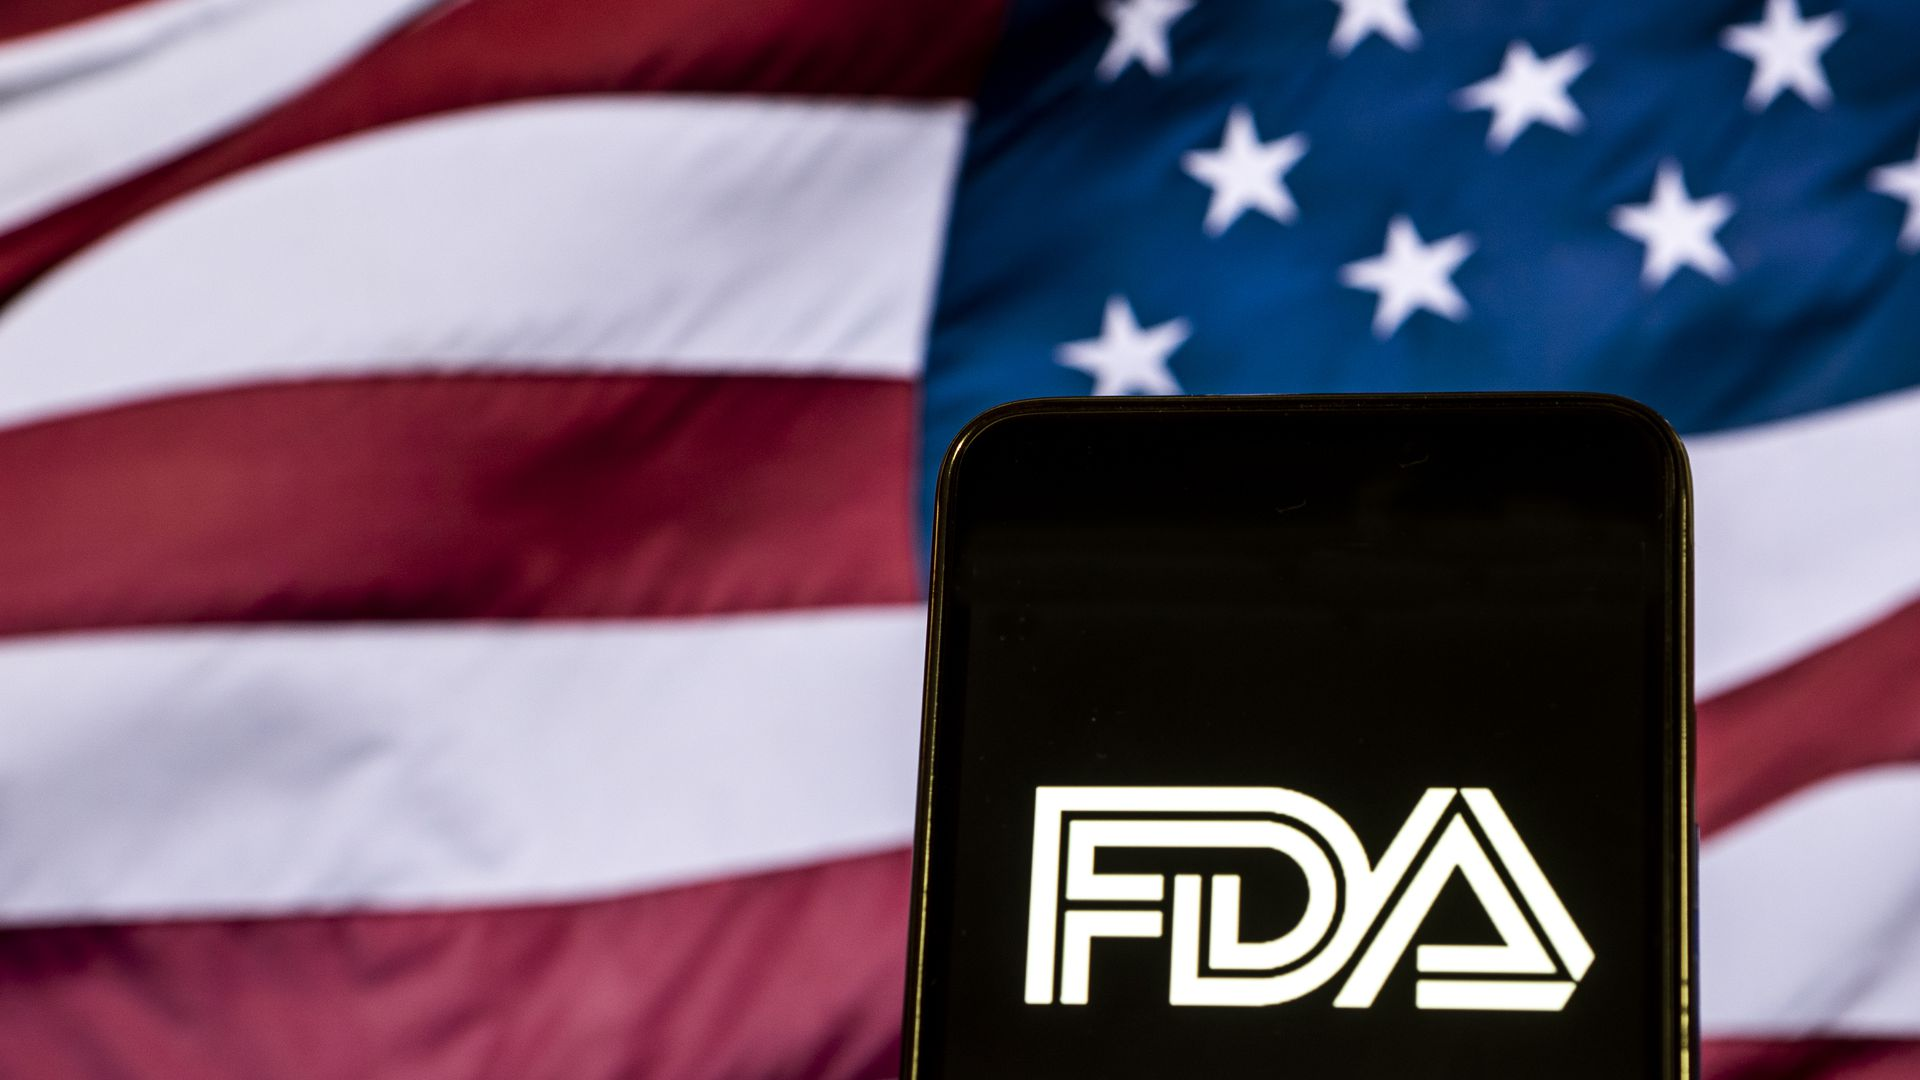 A phone holds up the FDA logo, an American flag waves in the background.